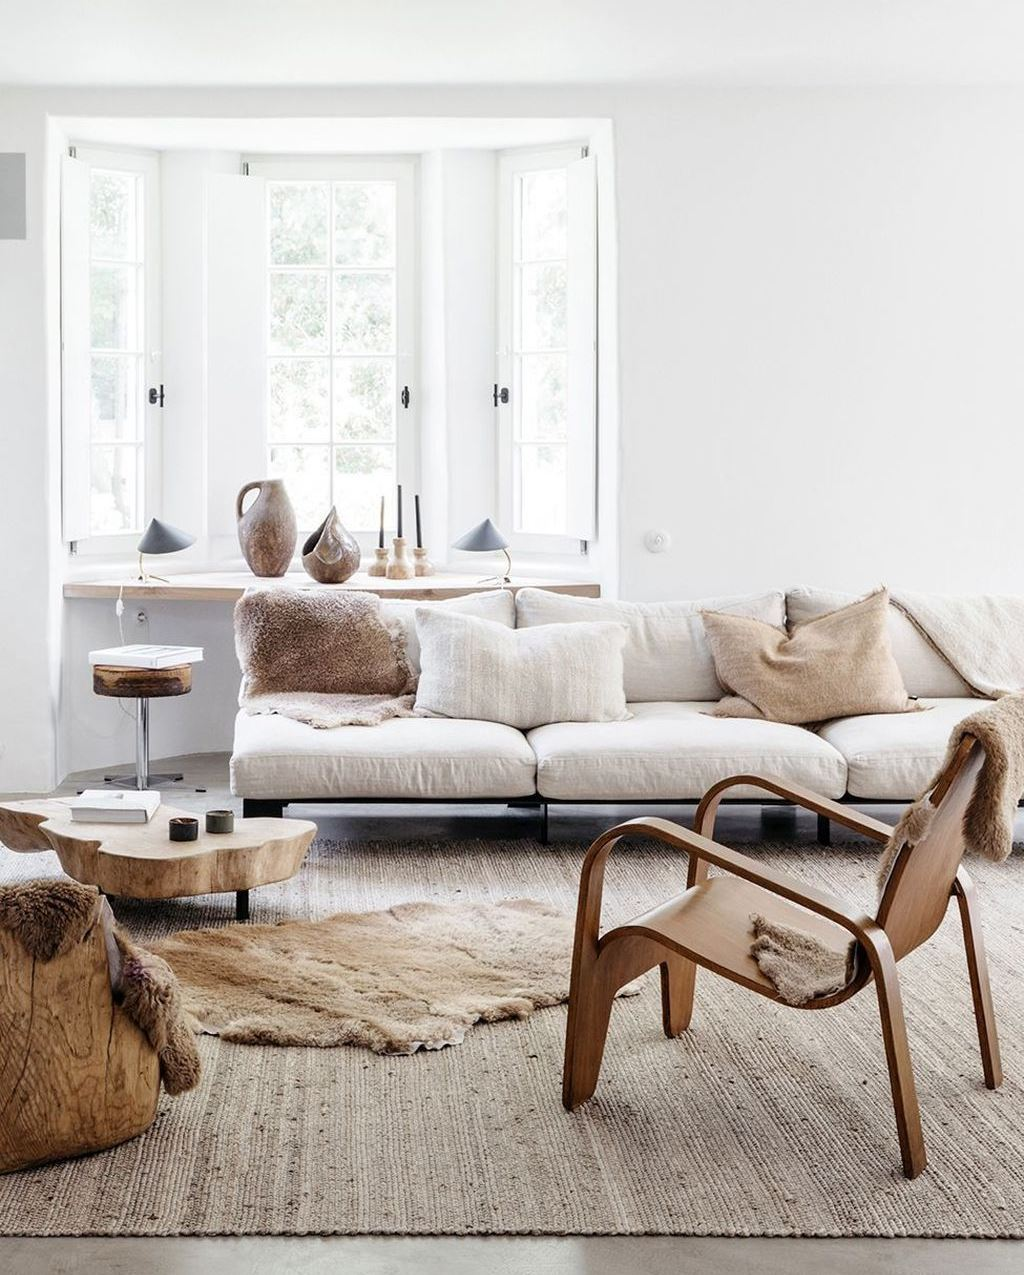 This Belgian Home Is The Perfect Cozy, Clean Slate For Winter